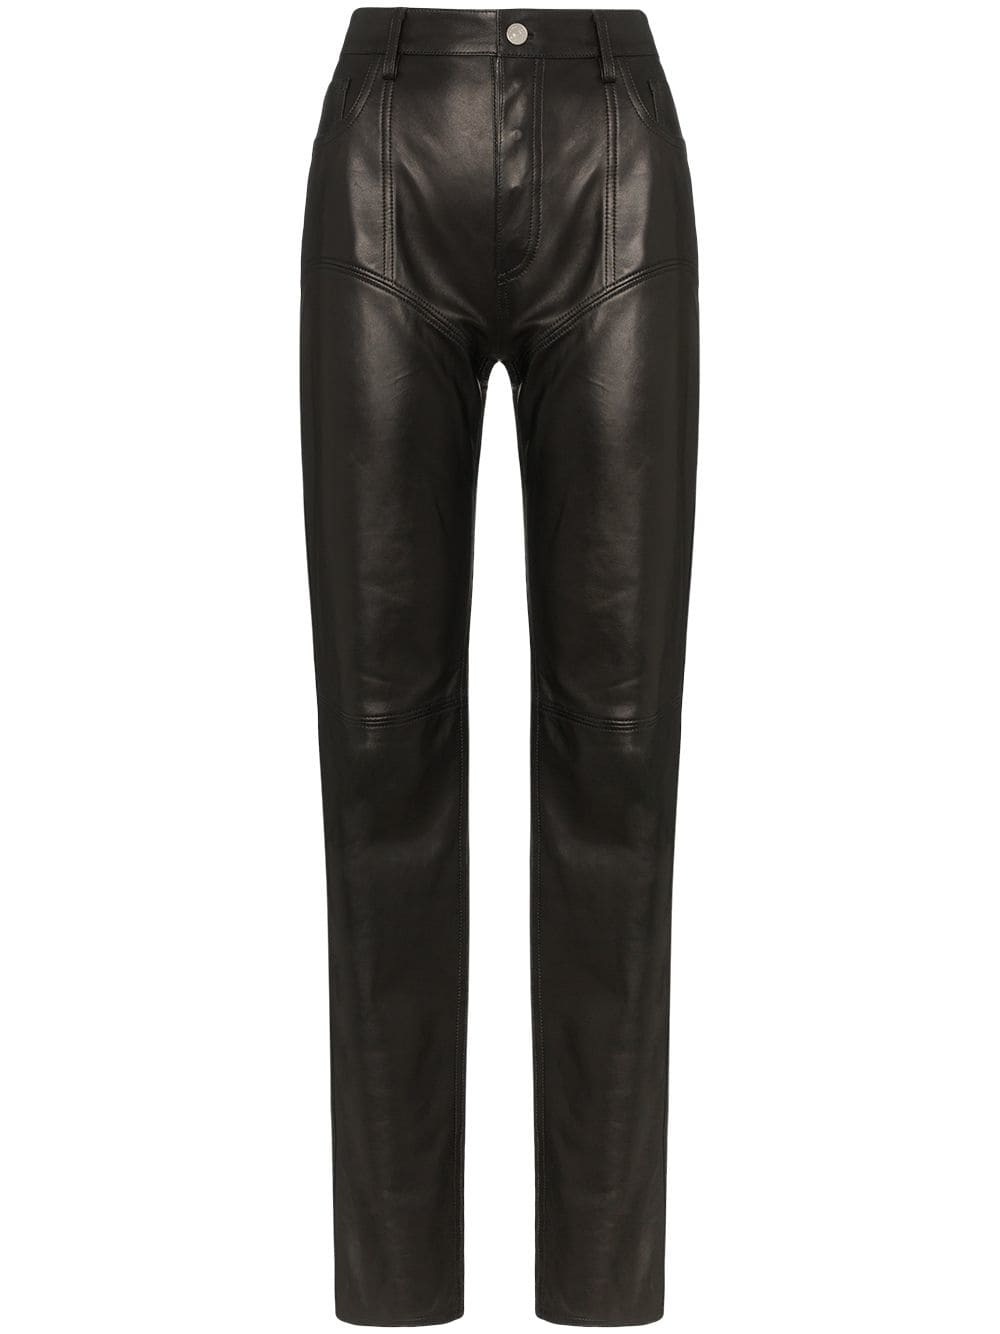 High-waisted straight leg leather trousers by Mugler, available on farfetch.com for $1942 Kendall Jenner Pants Exact Product